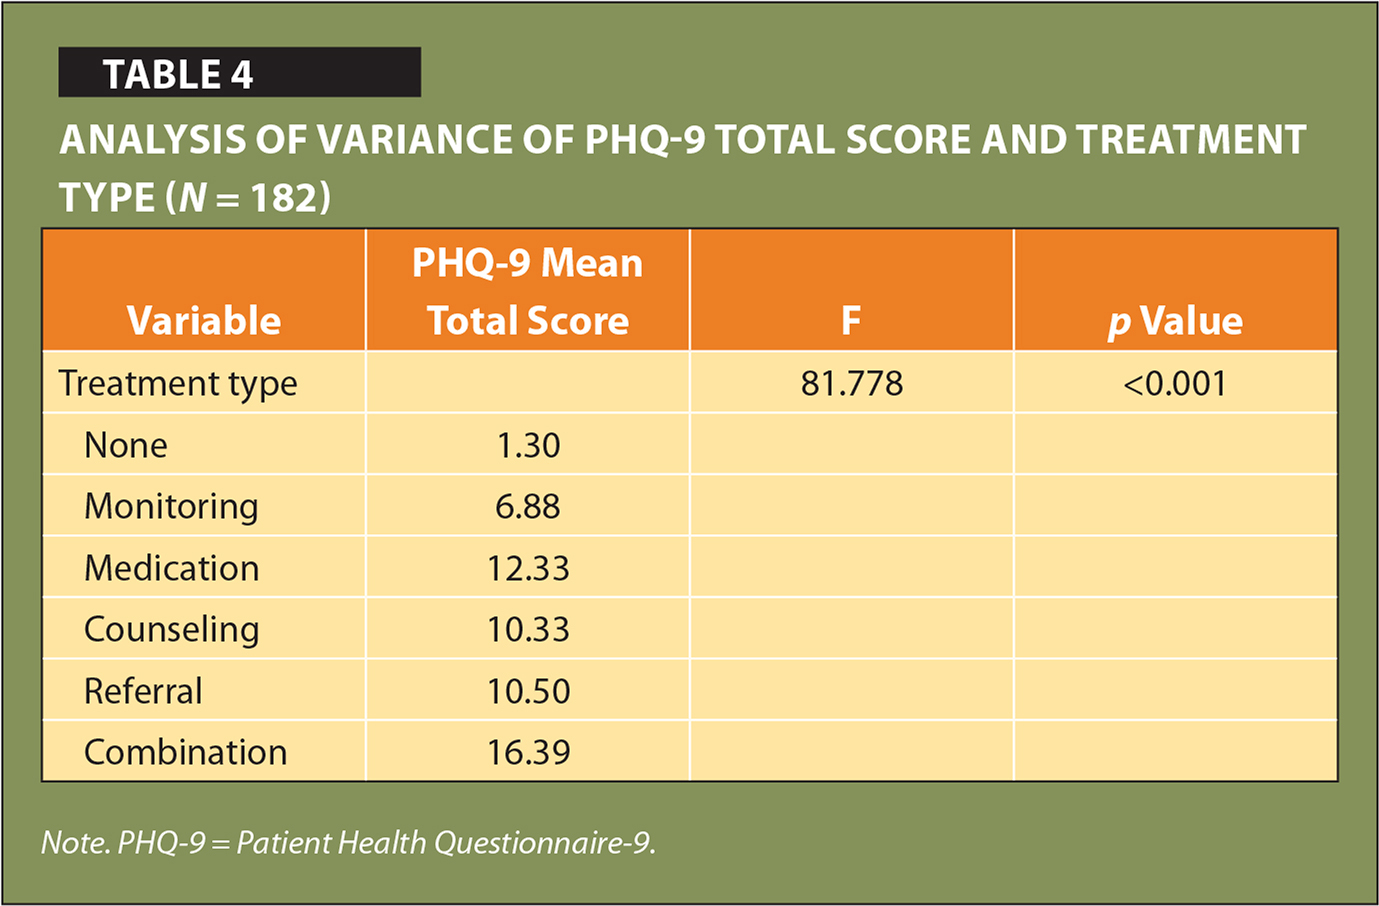 Analysis of Variance of PHQ-9 Total Score and Treatment Type (N = 182)